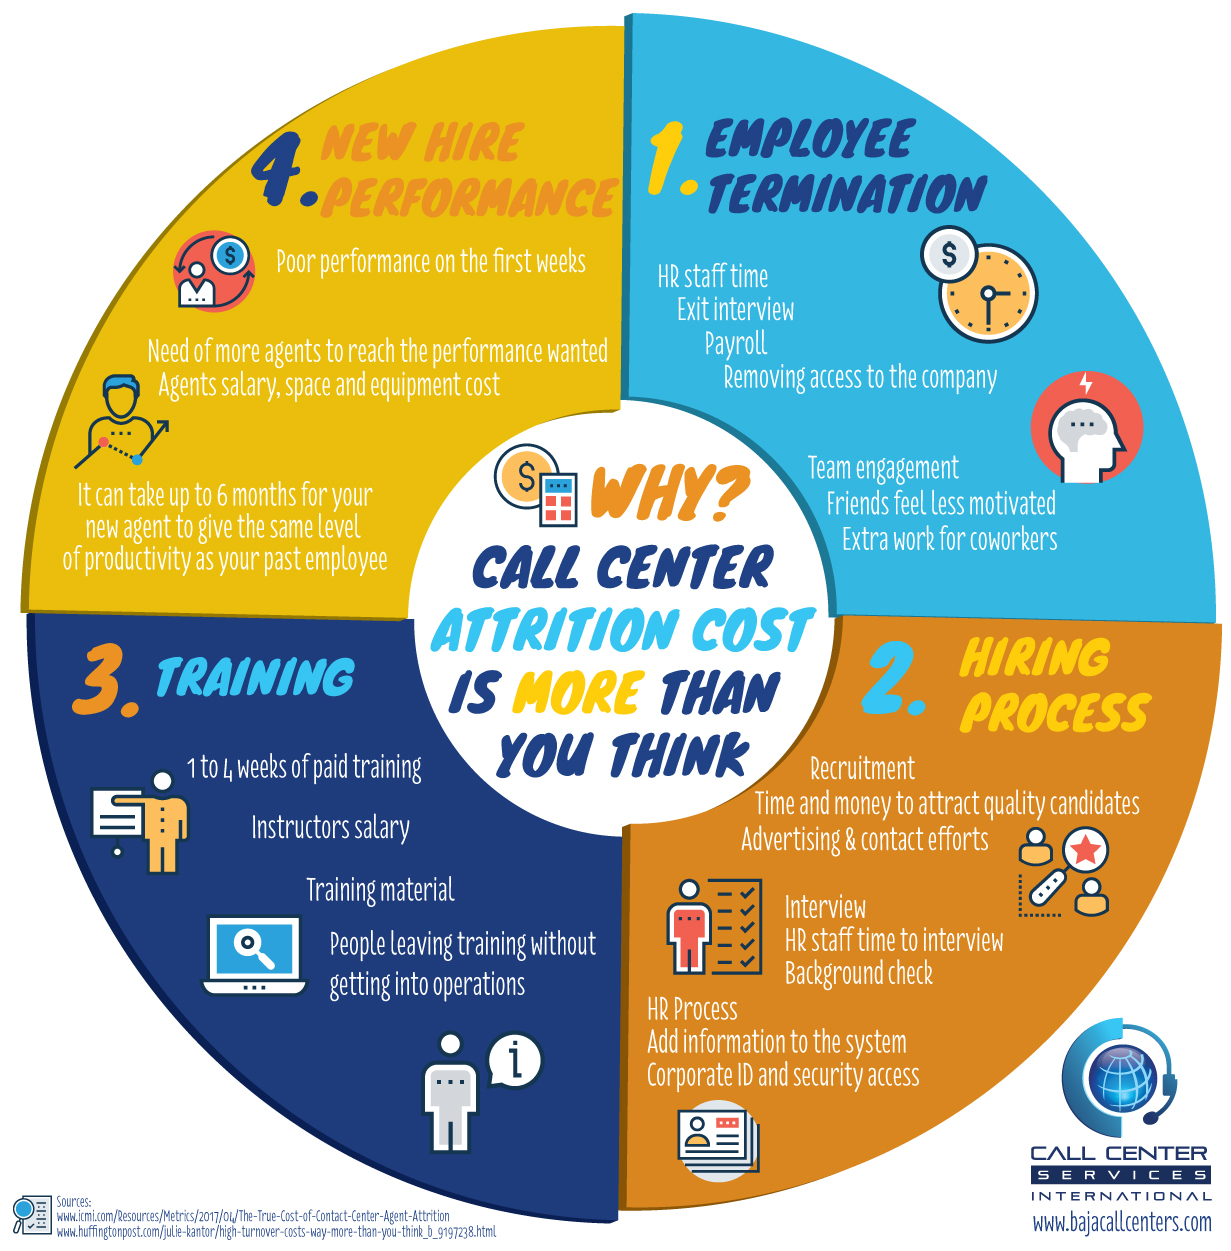 Why call center attrition cost more than you think